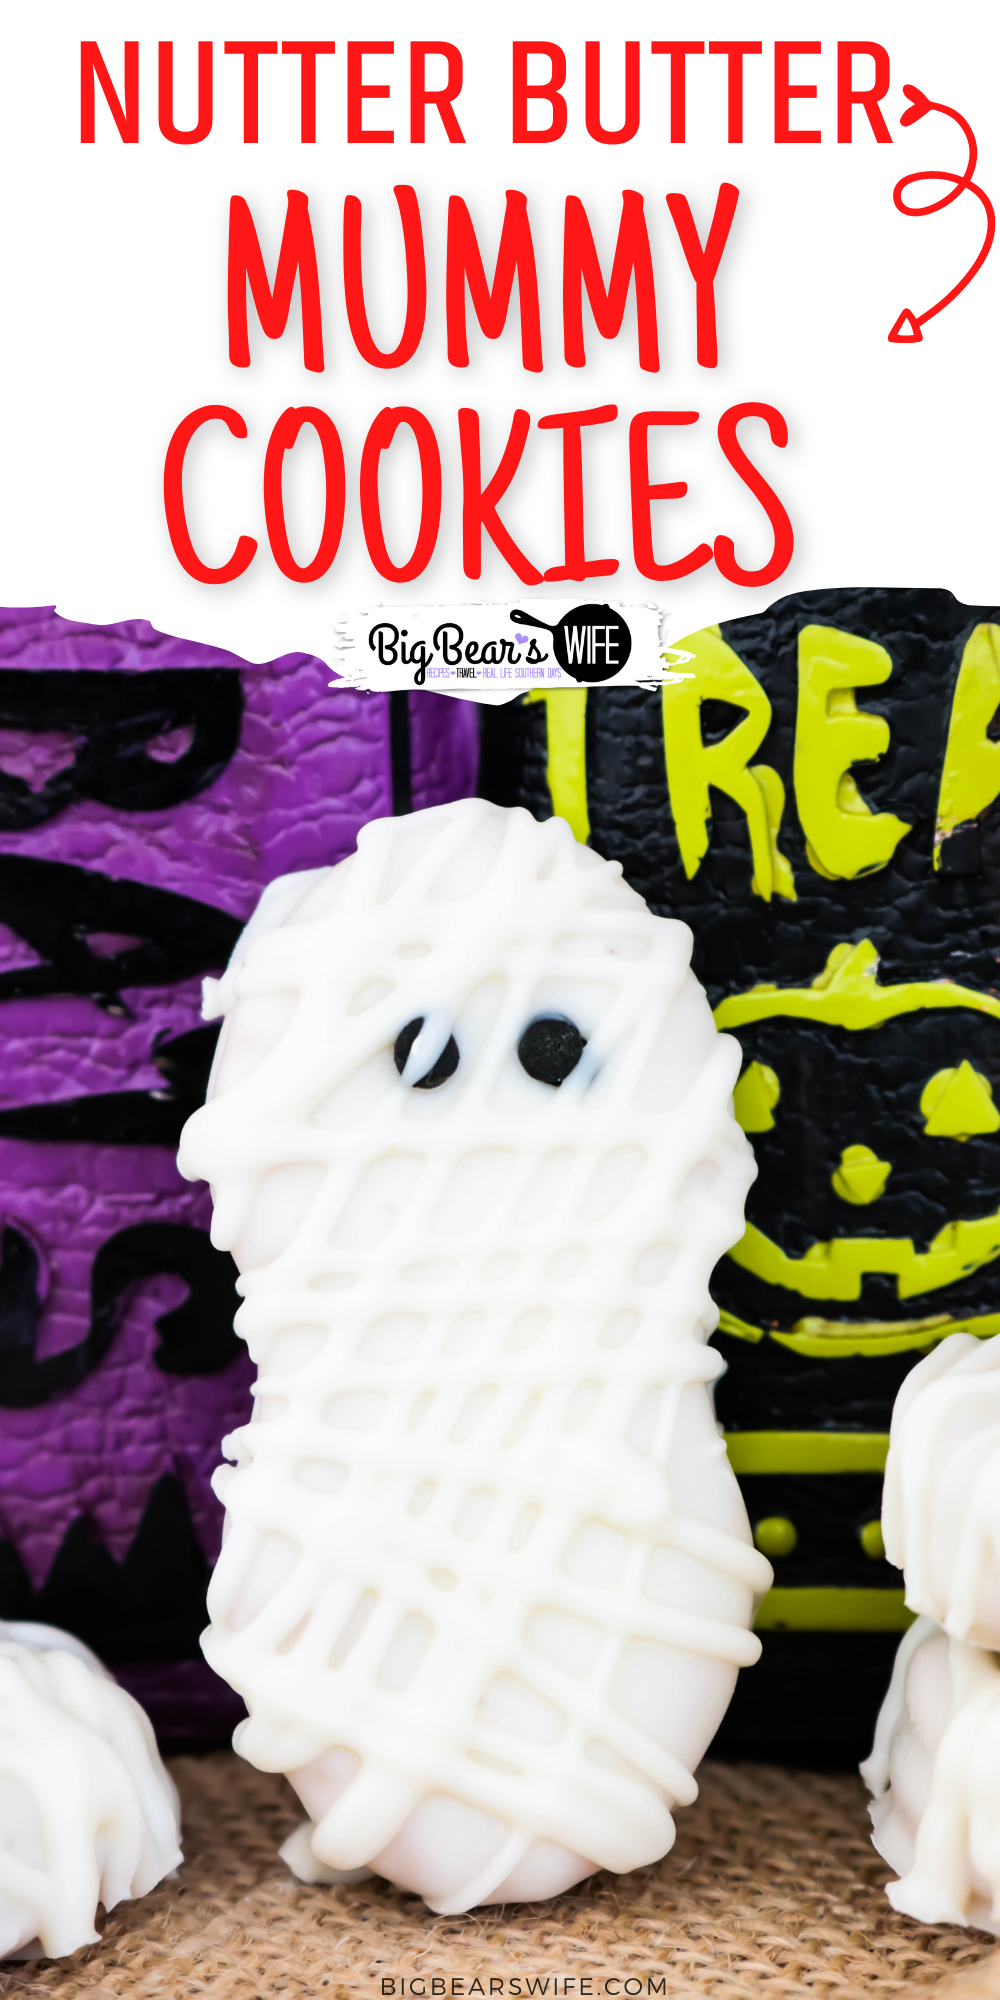 Nutter Butter cookies, white melting chocolate and small round black sprinkles make up these easy yummy, Nutter Butter Mummy Cookies!These Halloween cookies are easy to make with kids and a great Halloween treat for Halloween Parties!